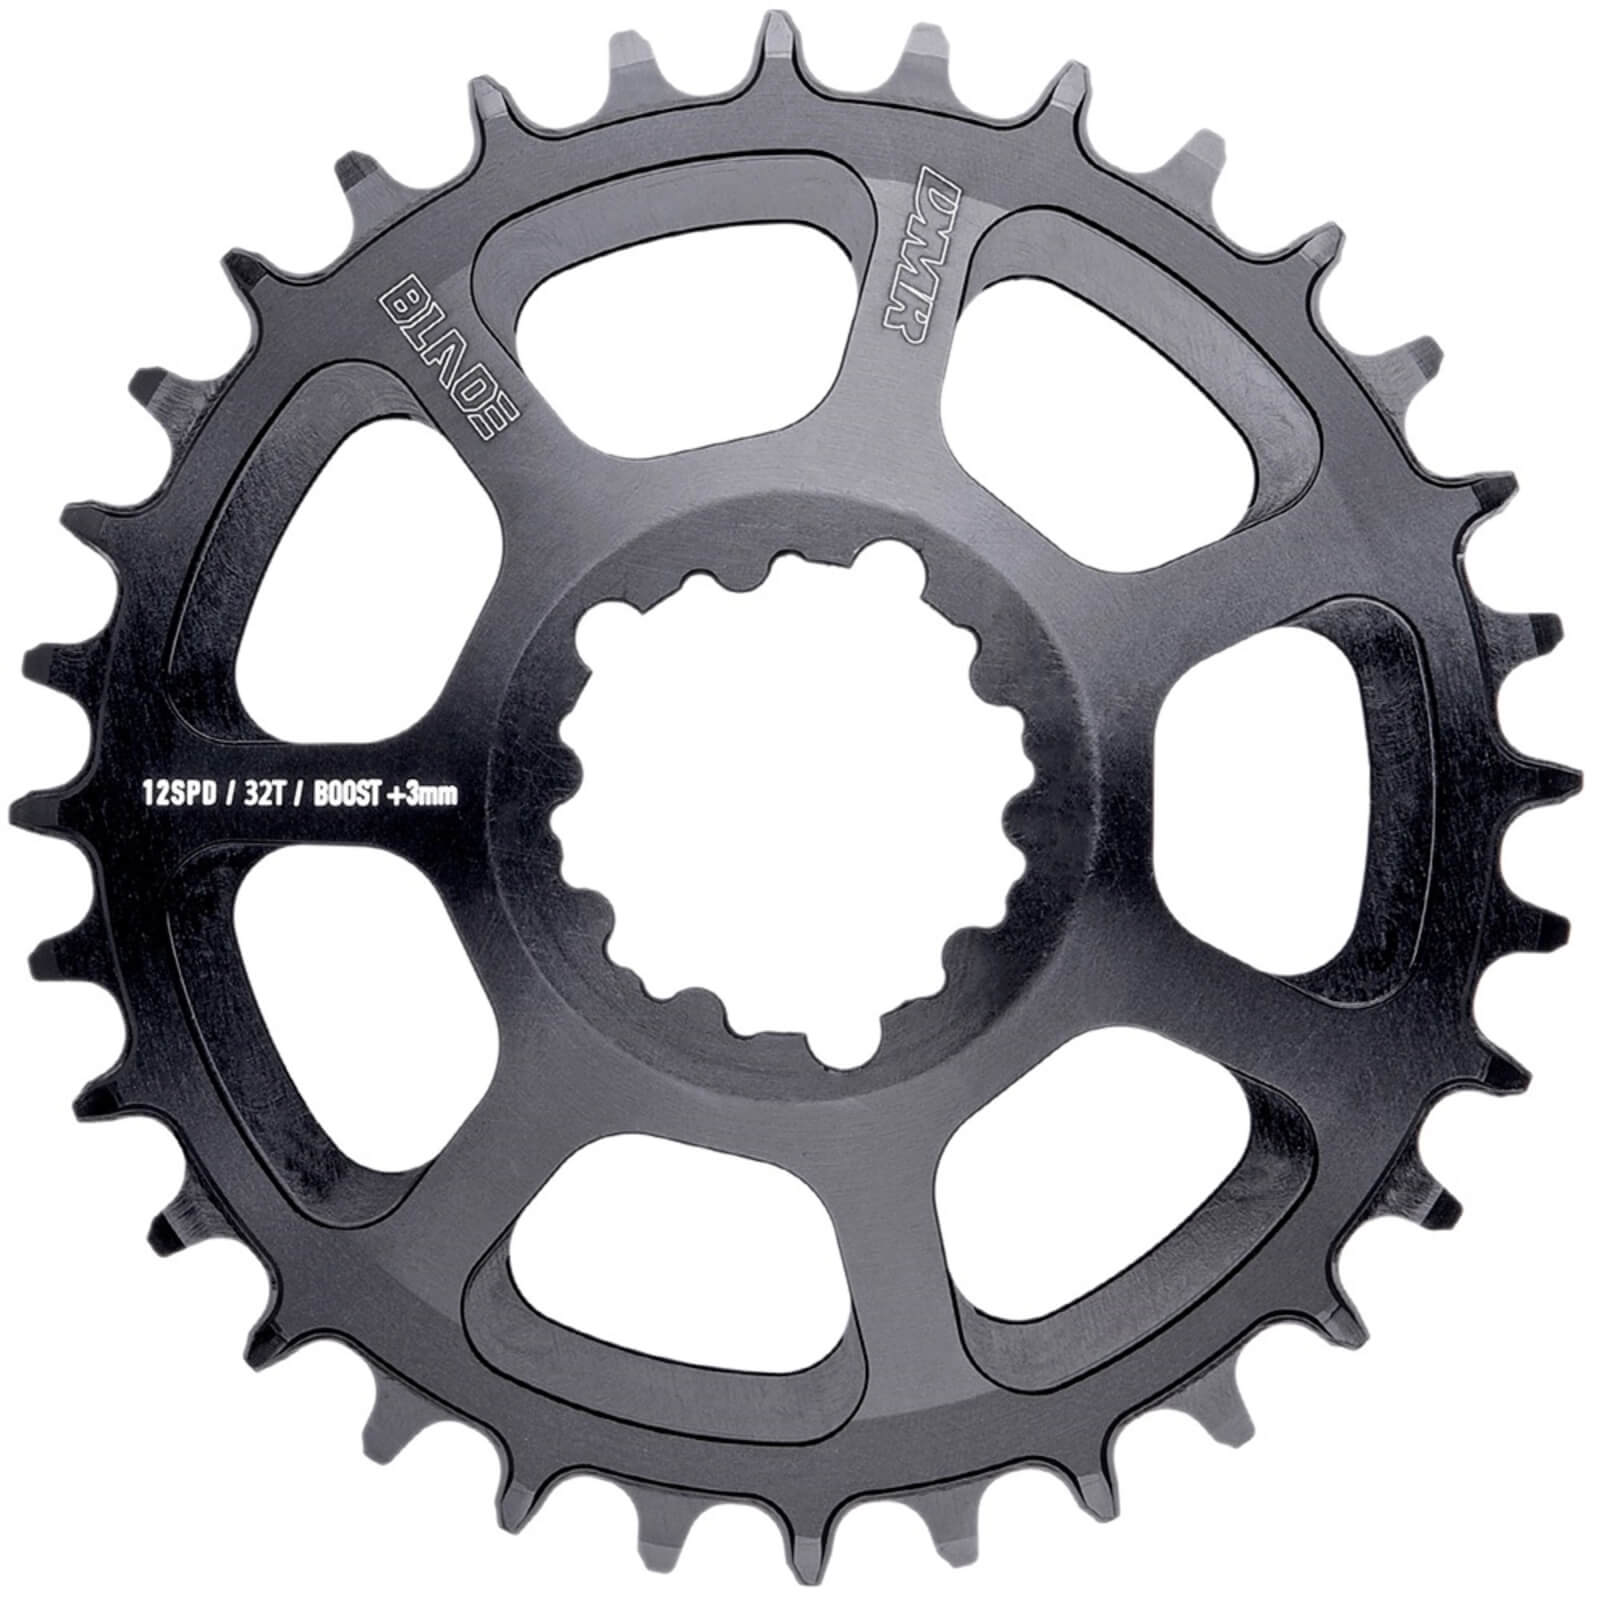 Dmr Blade 12 Speed Direct Mount Chain Ring - 36t - Boost